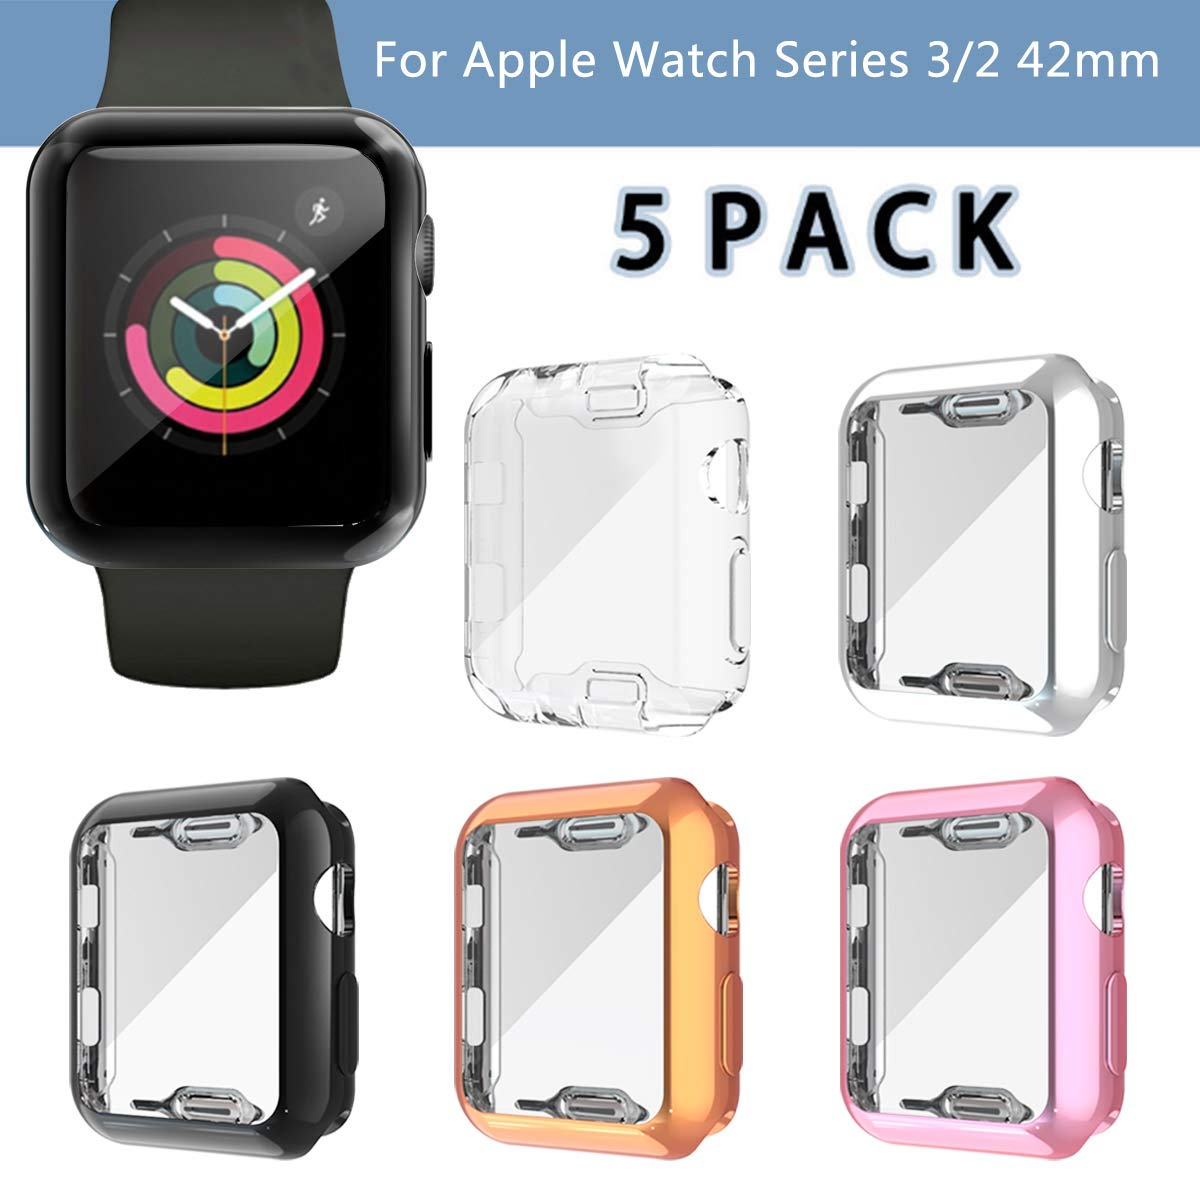 5 Pack Case Compatible with Apple Watch Series 3 Screen Protector 42mm, Haojavo Soft Plated TPU Full Protective iWatch Case Cover for Apple Watch Series 3/2/1 42mm Accessories by Haojavo